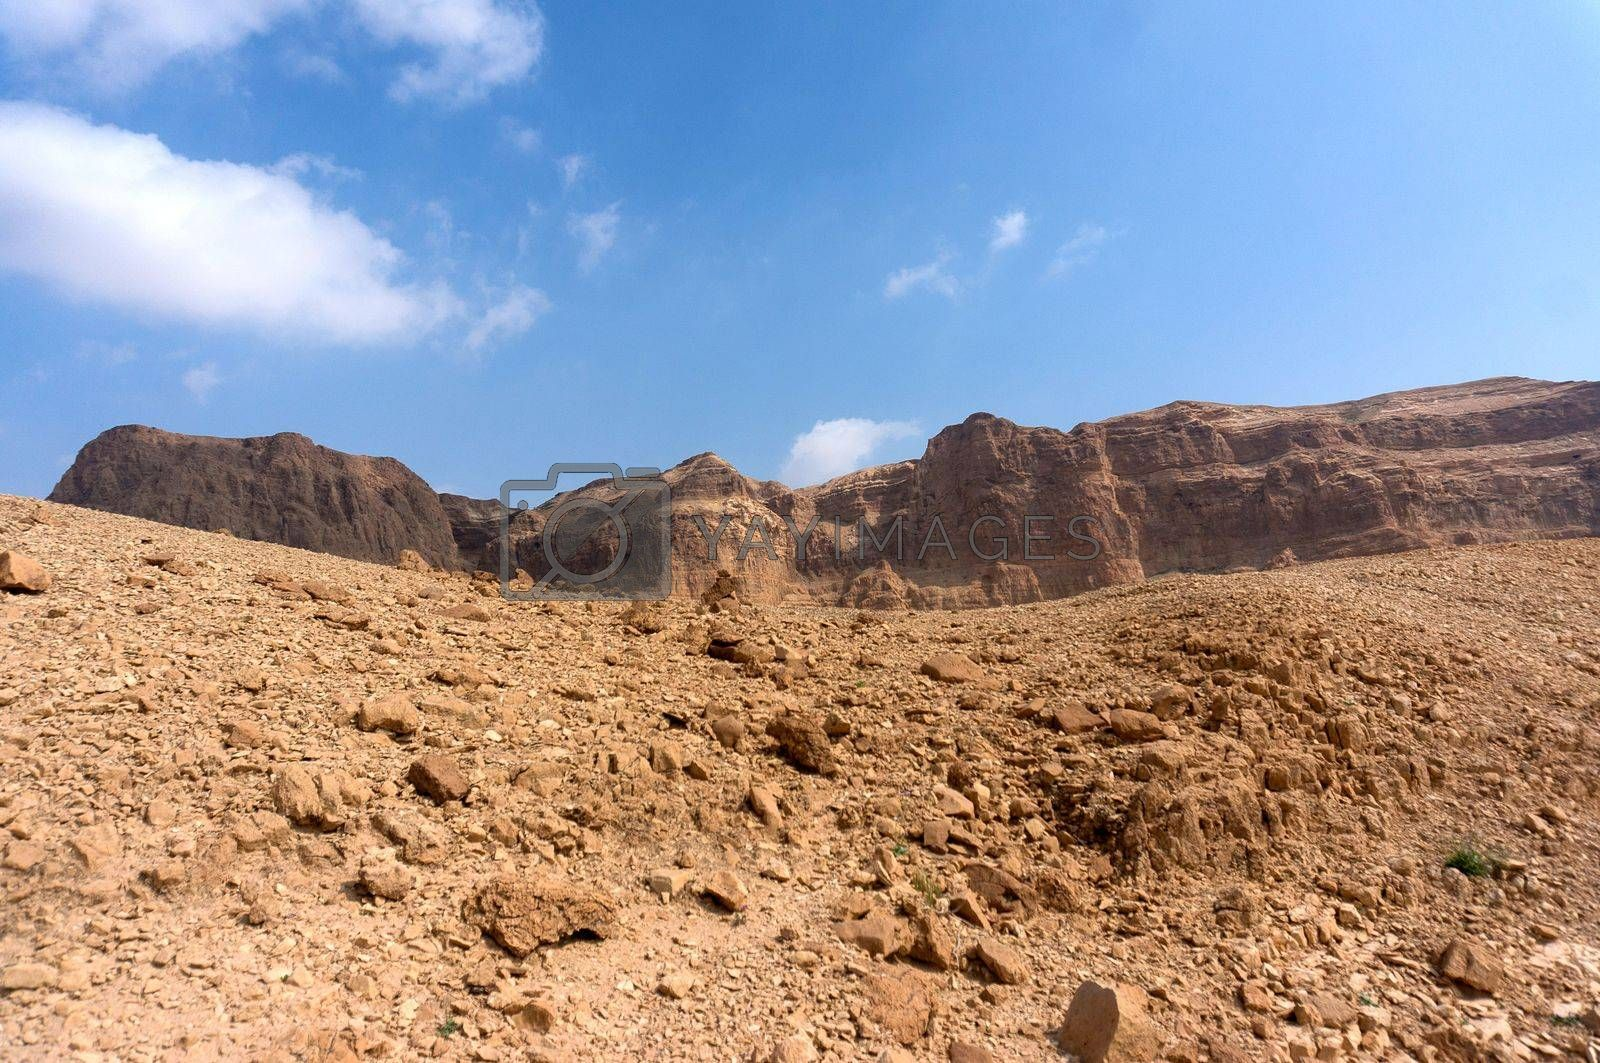 Desert vacation travel in Israel of Middle East by javax